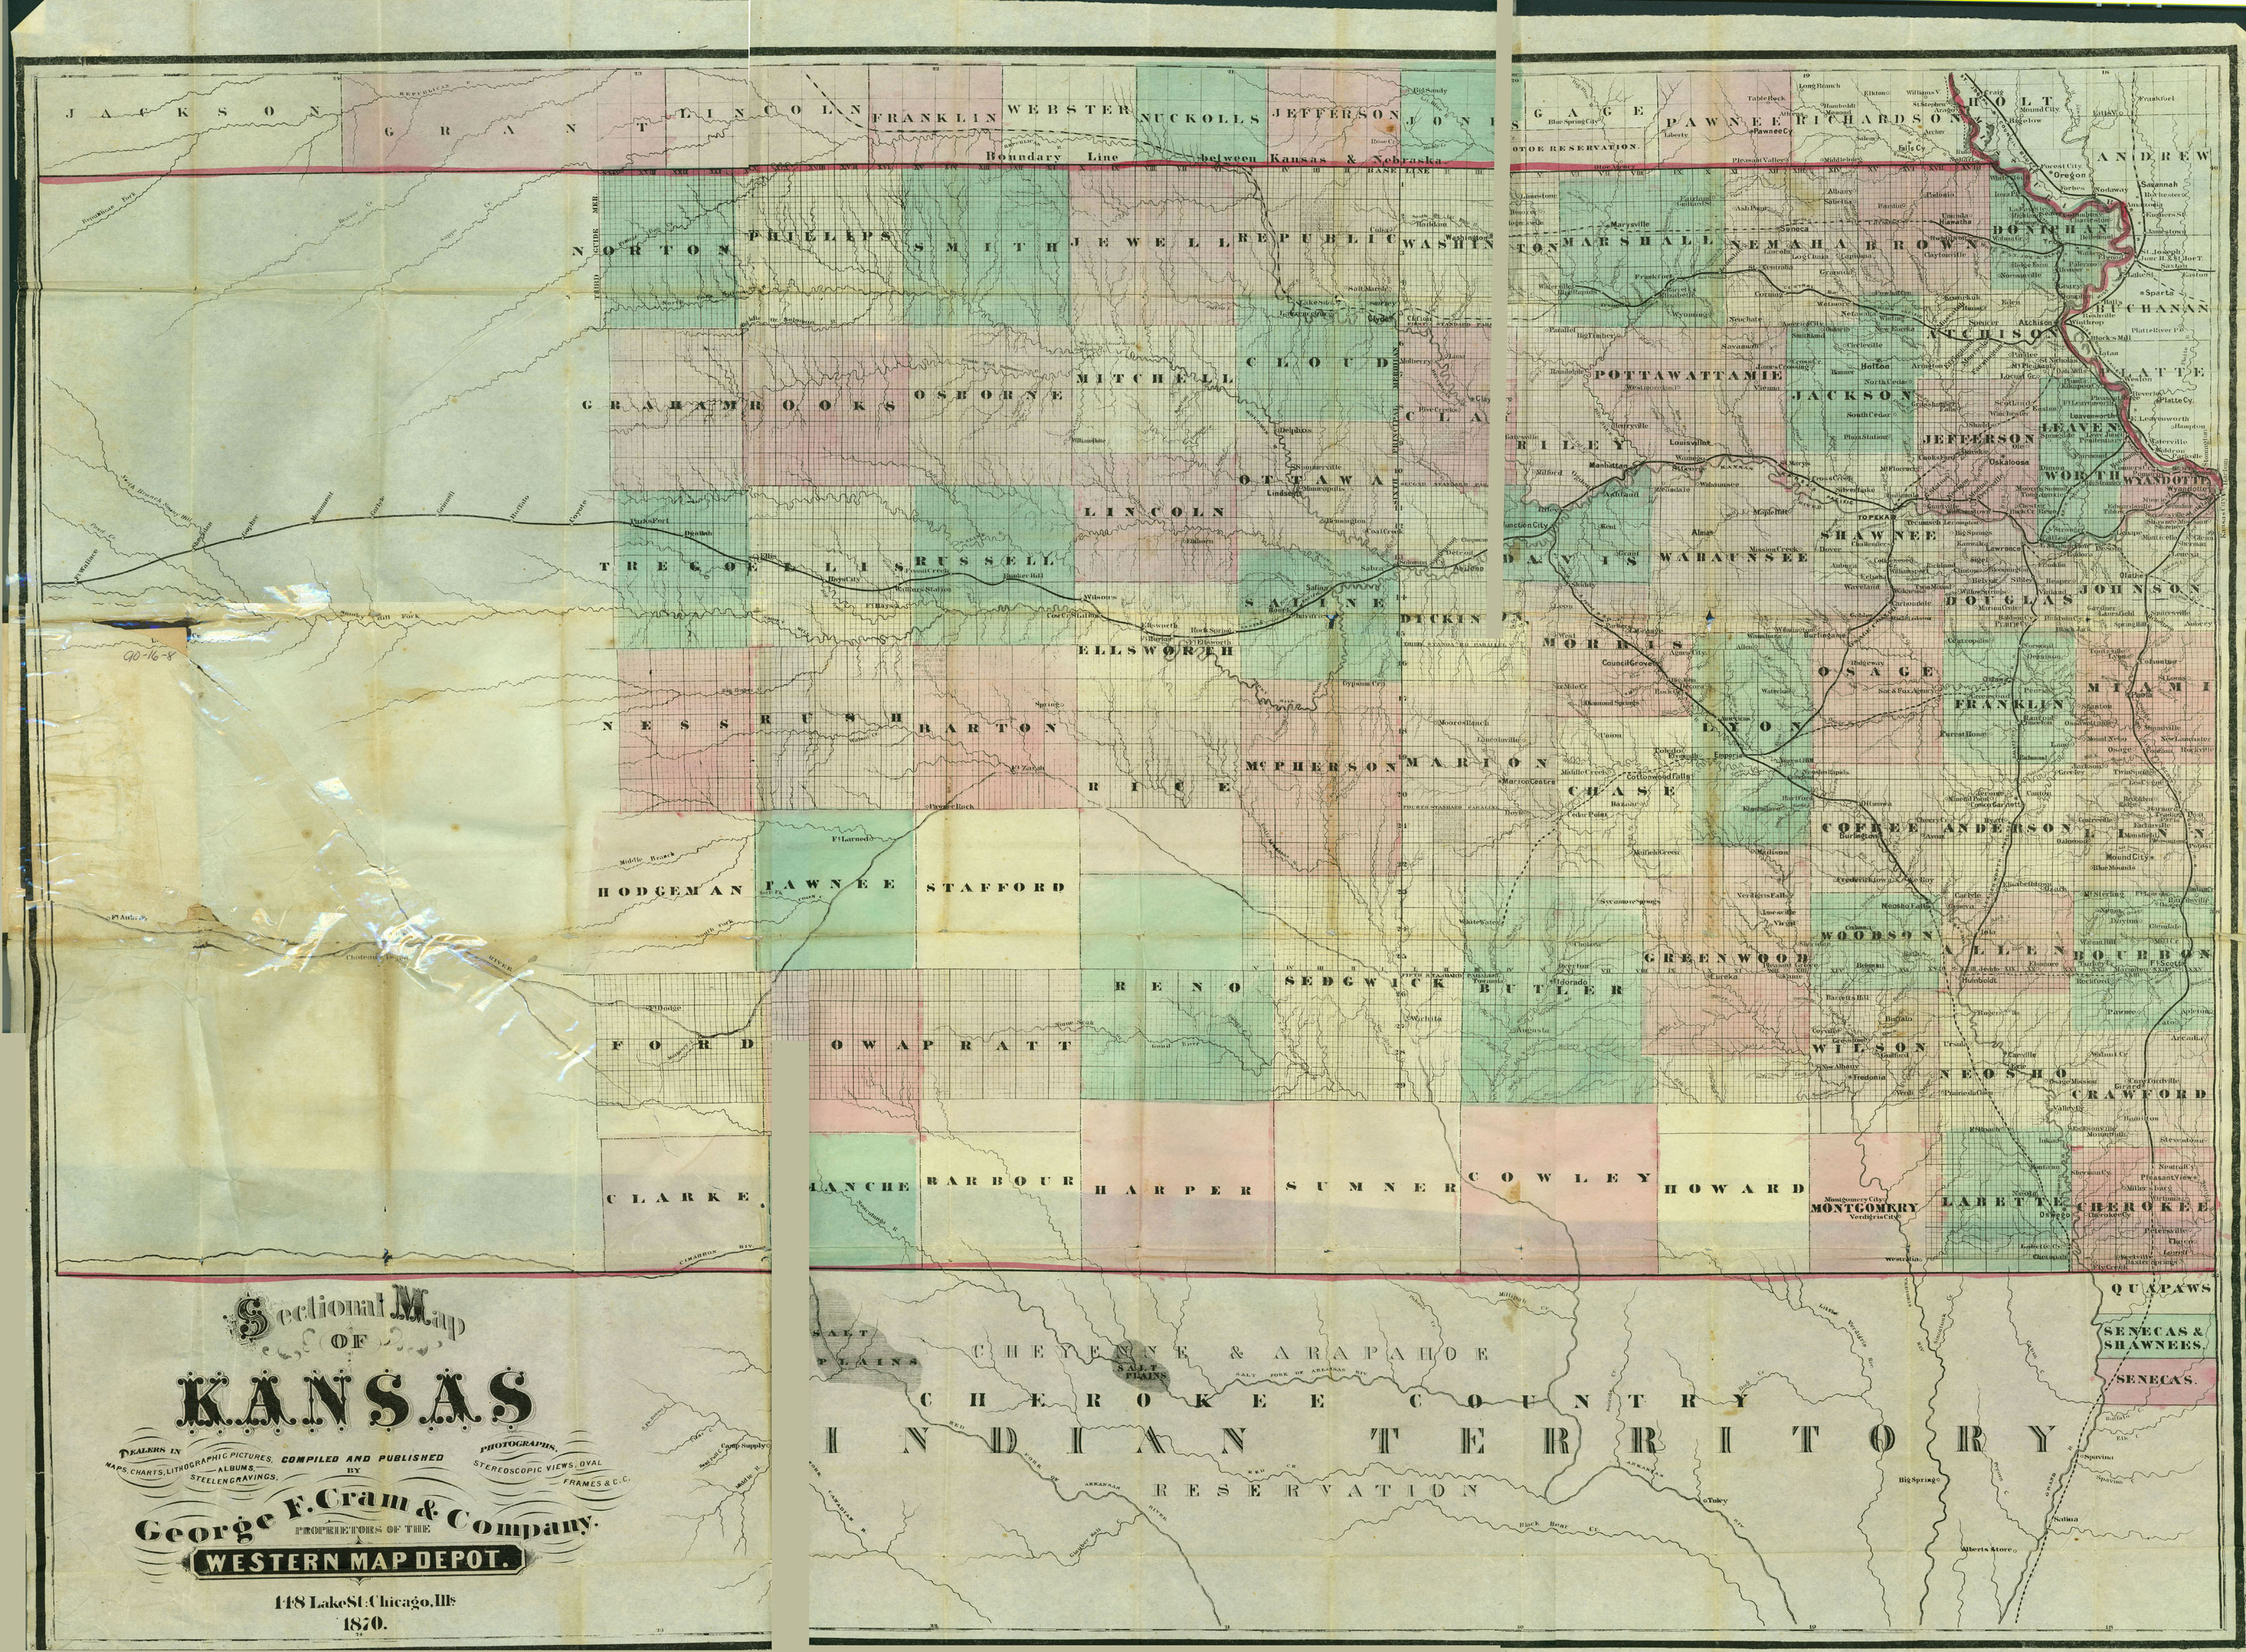 Maps at Cowley County Historical Society Museum